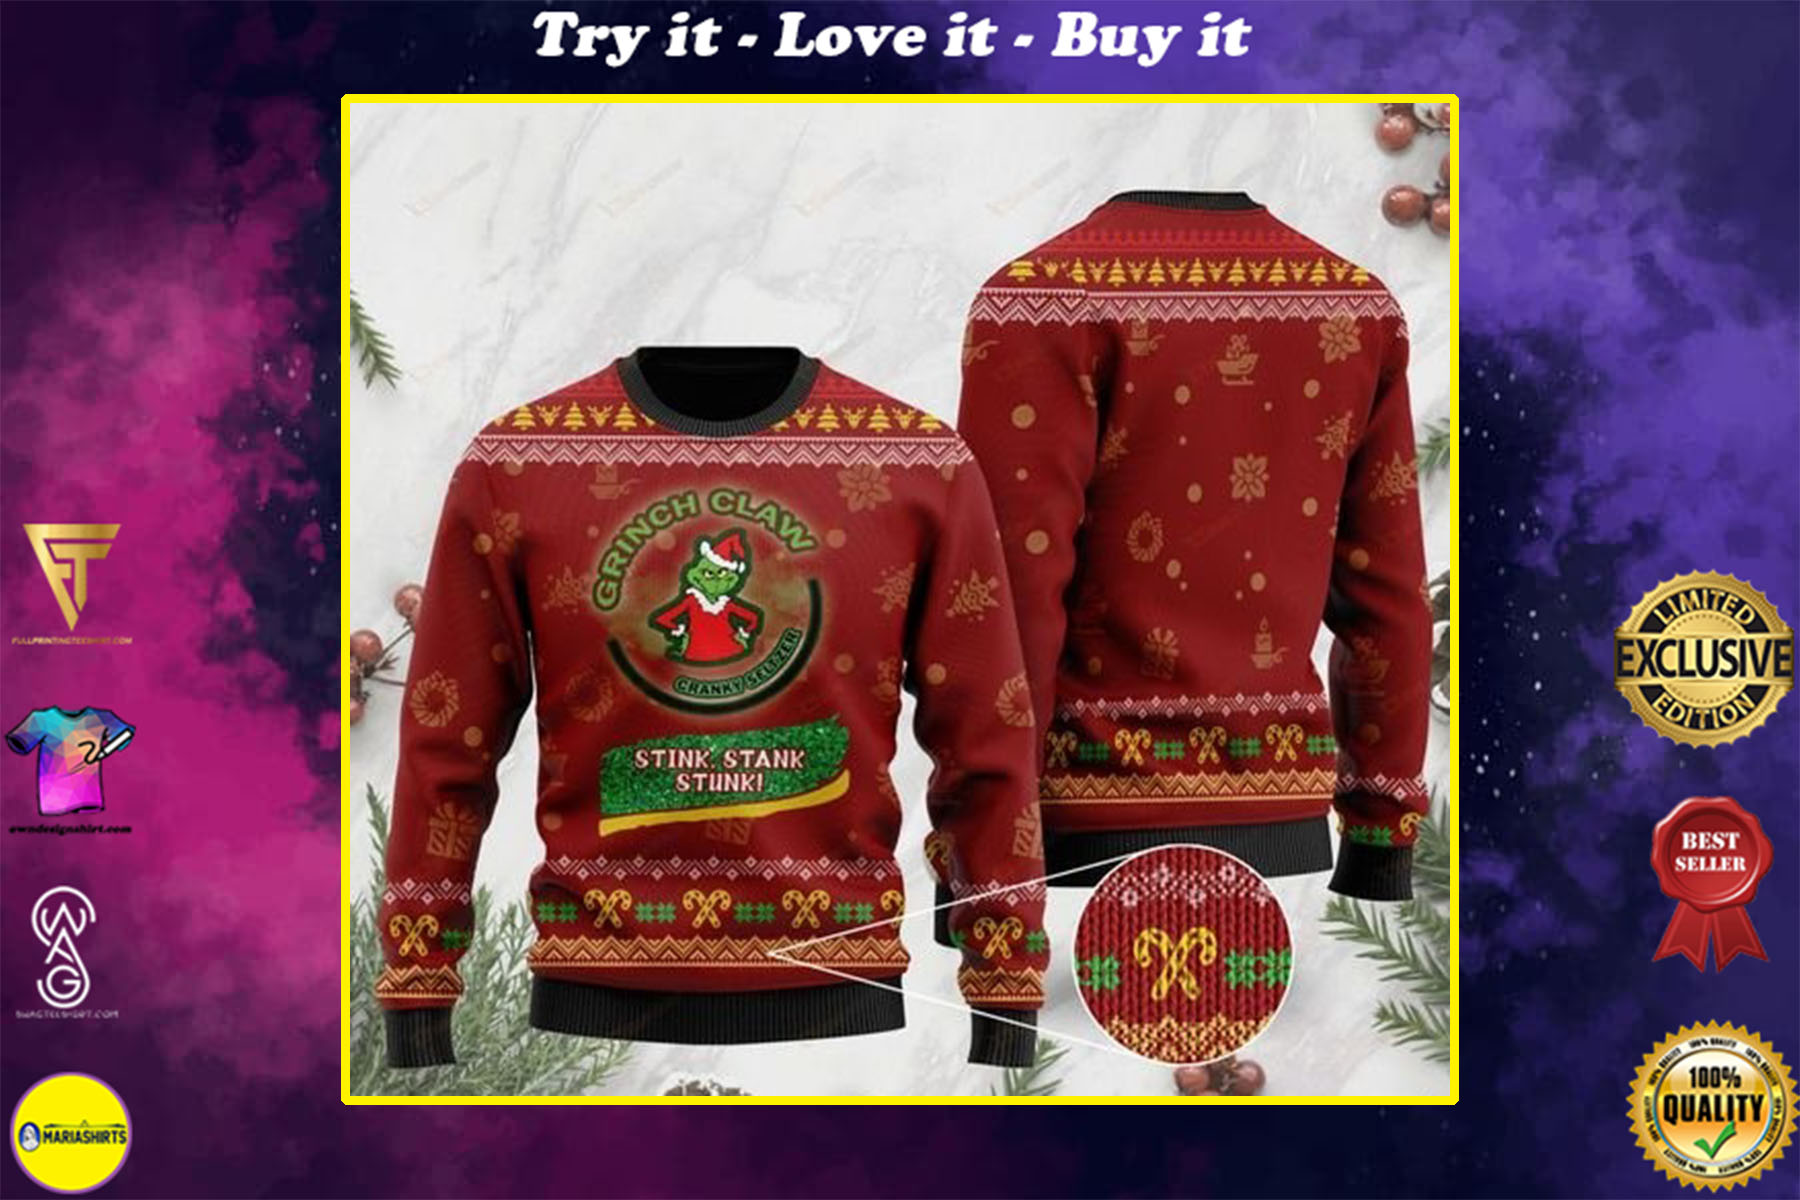 [special edition] grinch claw cranky seltzer stink stank stunk all over printed ugly christmas sweater - maria